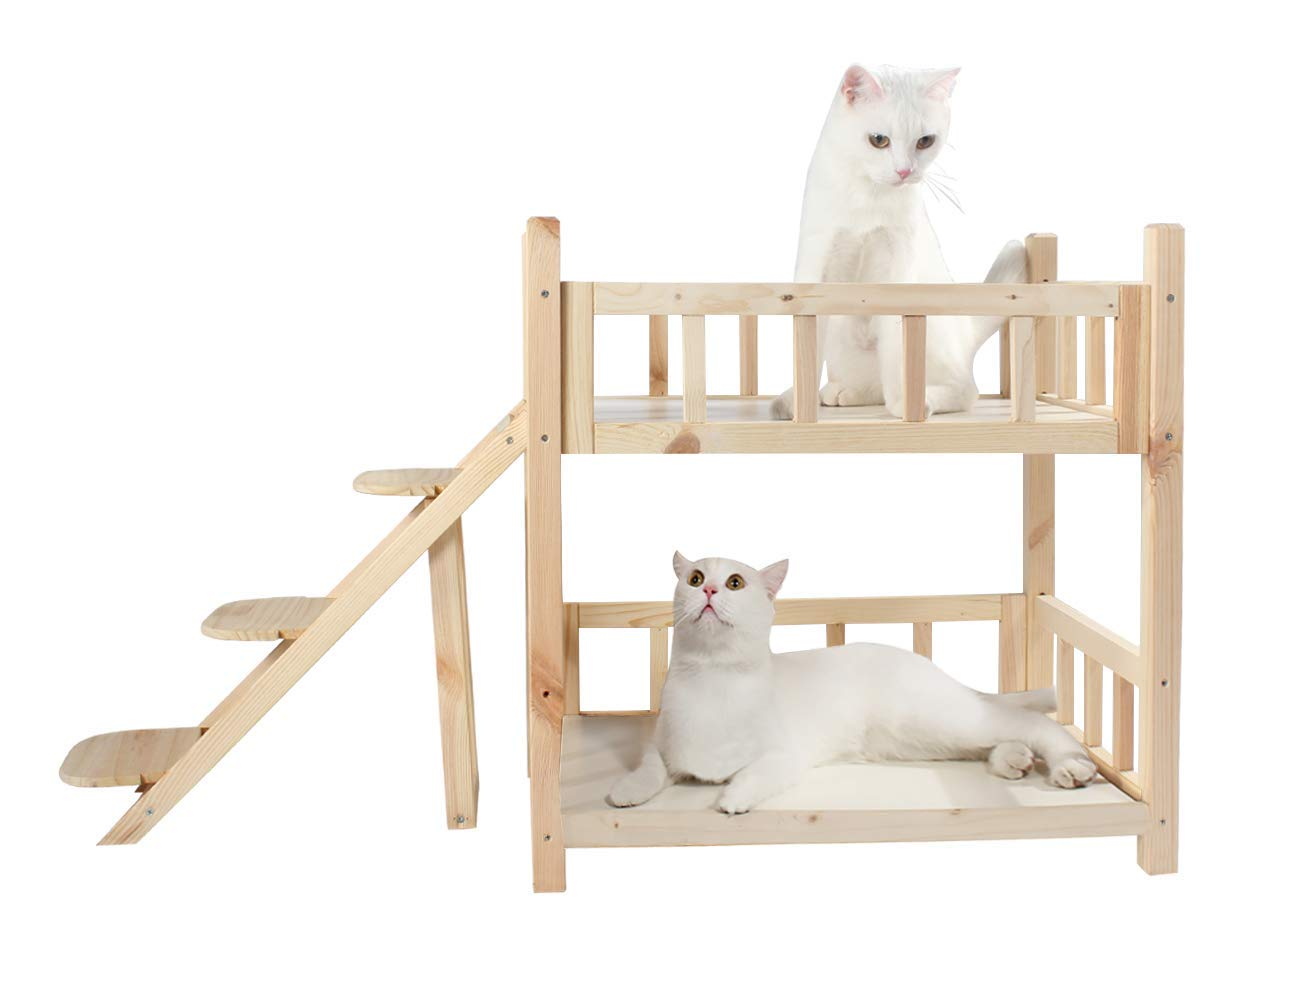 ROCKEVER Wooden Pet Bunk Bed Indoor,Dog Bed Small for Two Pets No Paint by ROCKEVER